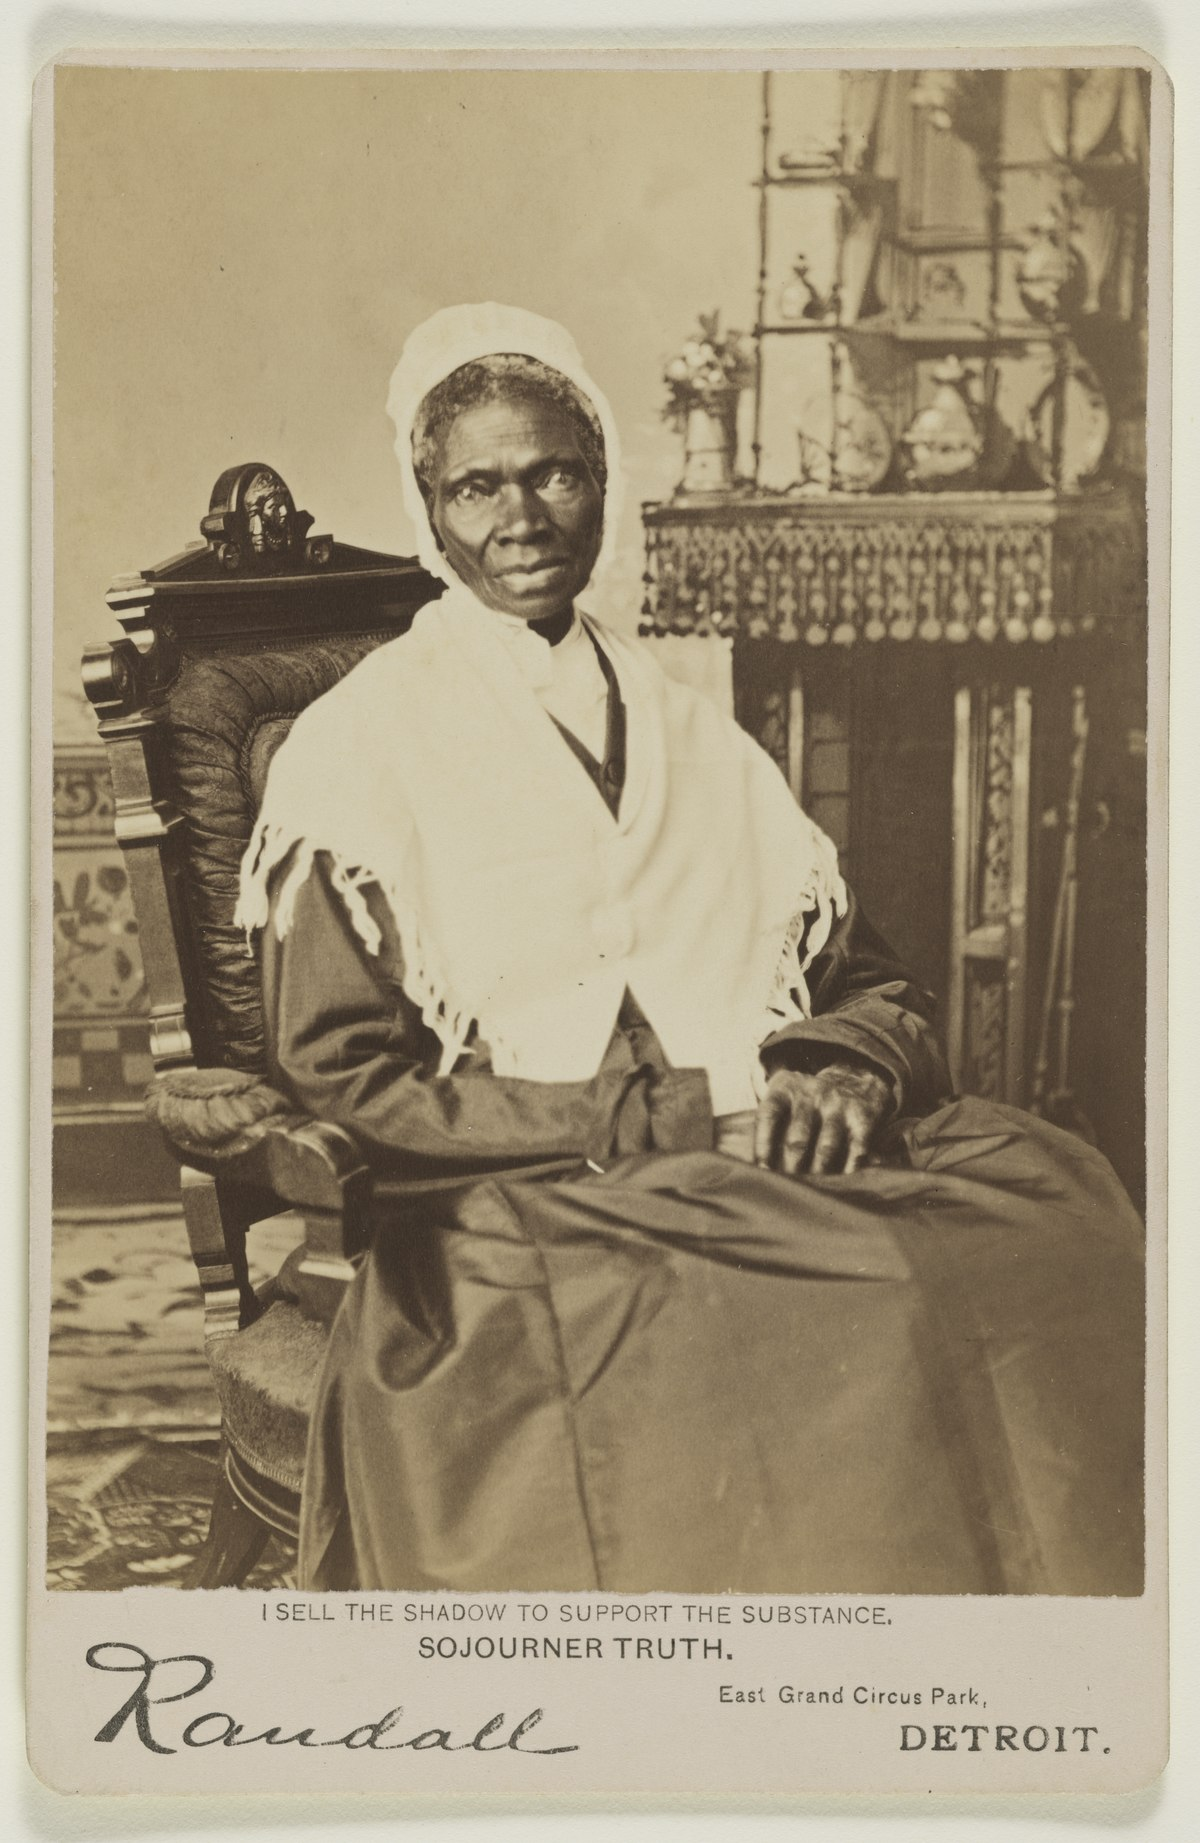 Aztec Kleed Sojourner Truth Wikipedia